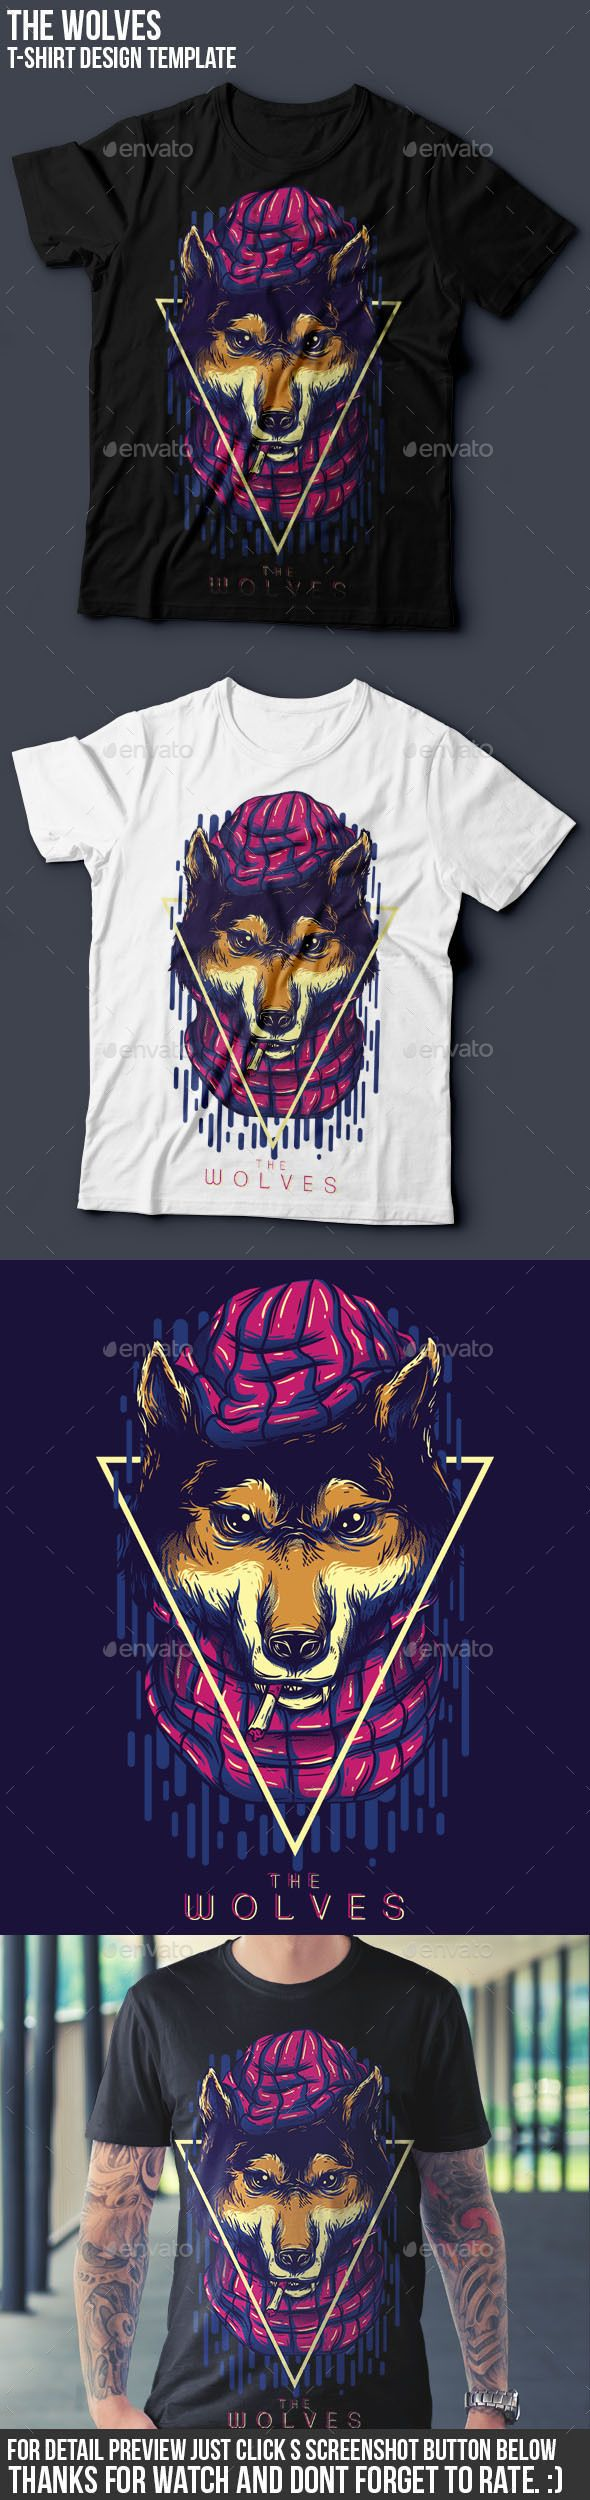 Design t shirt graphics online - The Wolves Part Iii T Shirt Design